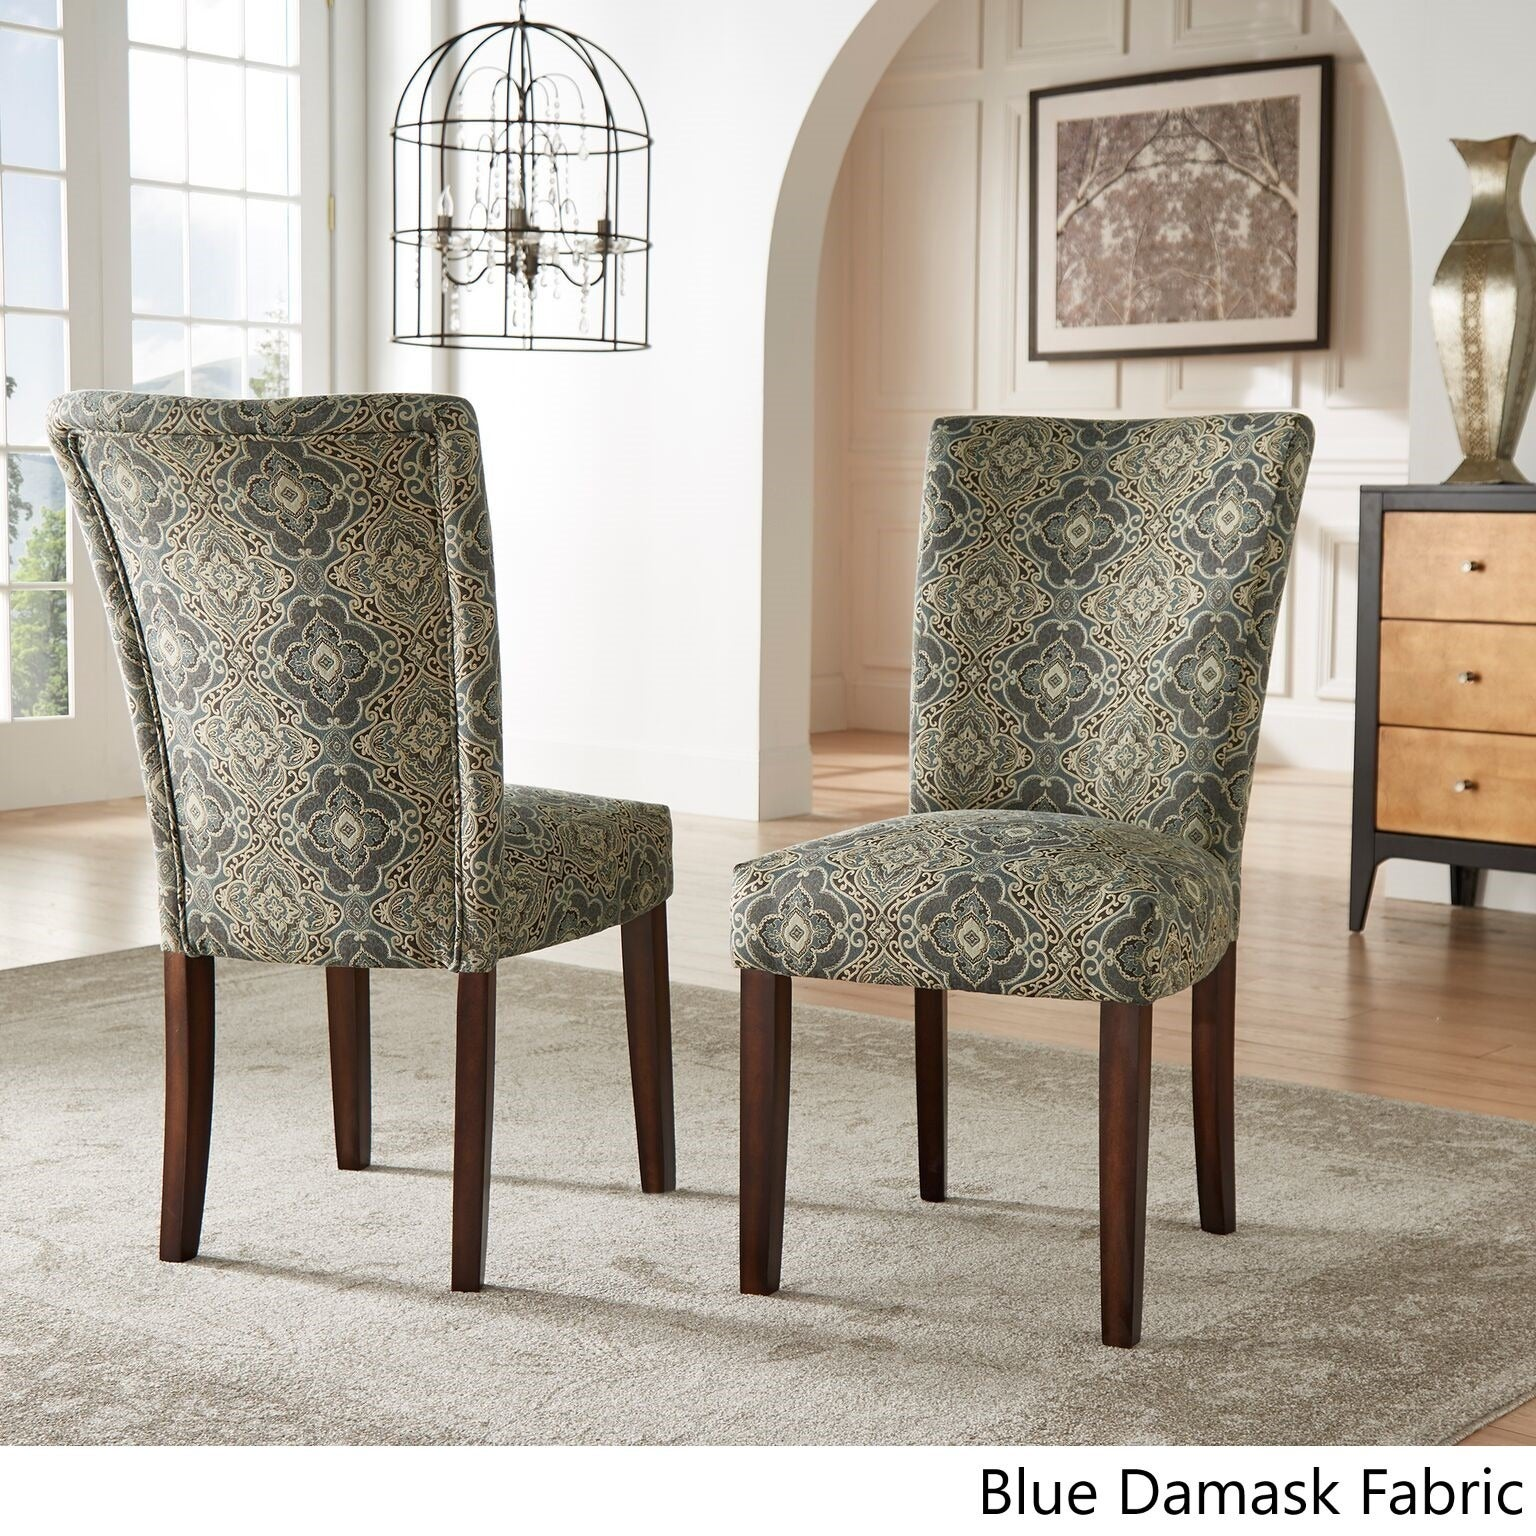 Buy blue kitchen dining room chairs online at overstock com our best dining room bar furniture deals